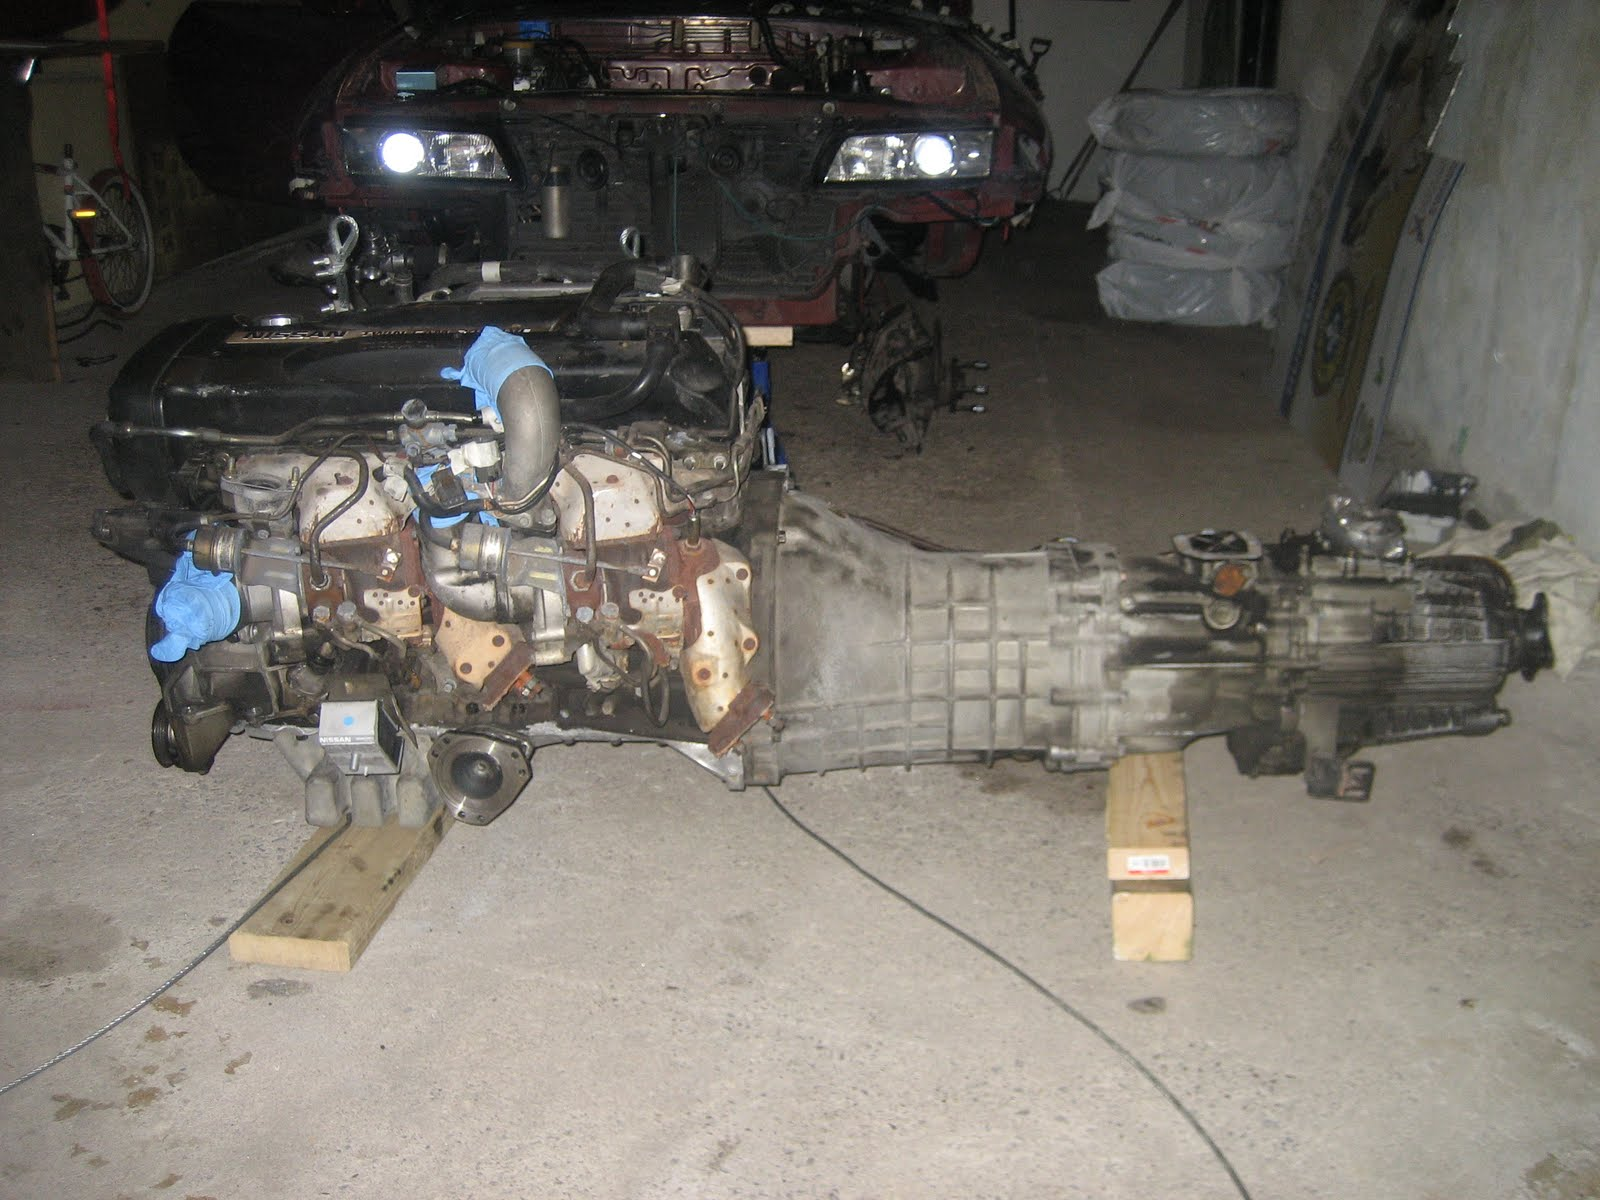 RB26 Engine Turbo swap Upgrade and Engine Overhaul Guide